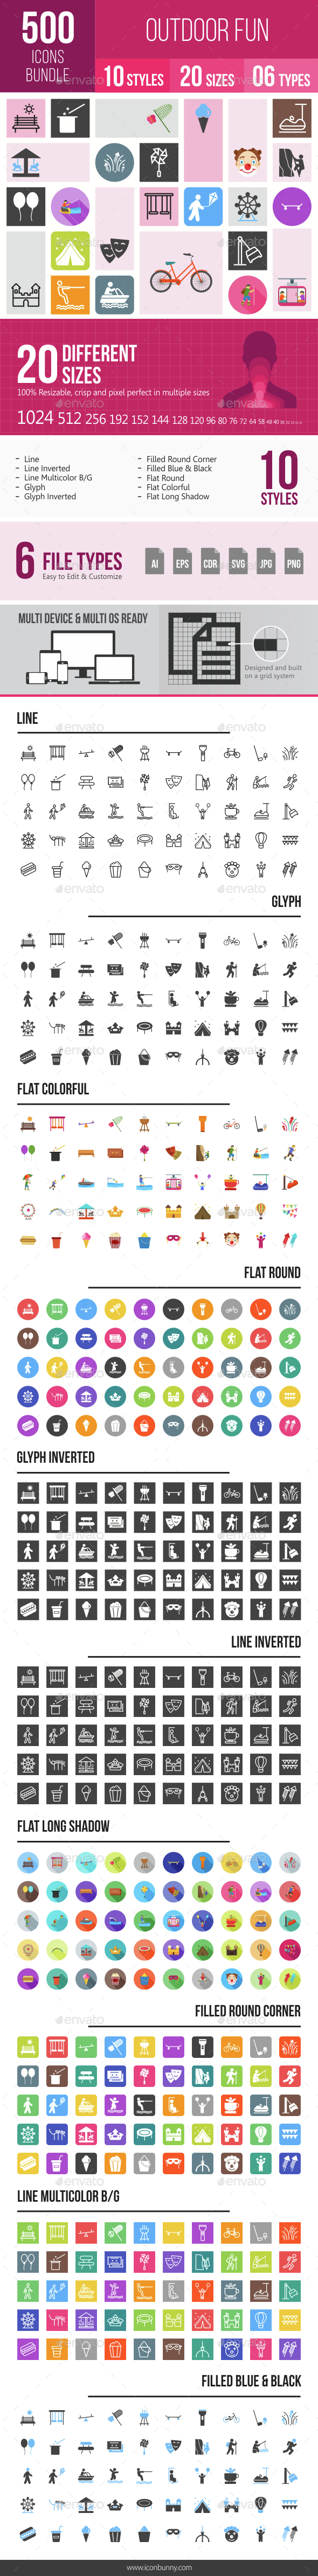 500 Outdoor Fun Icons Bundle - Icons